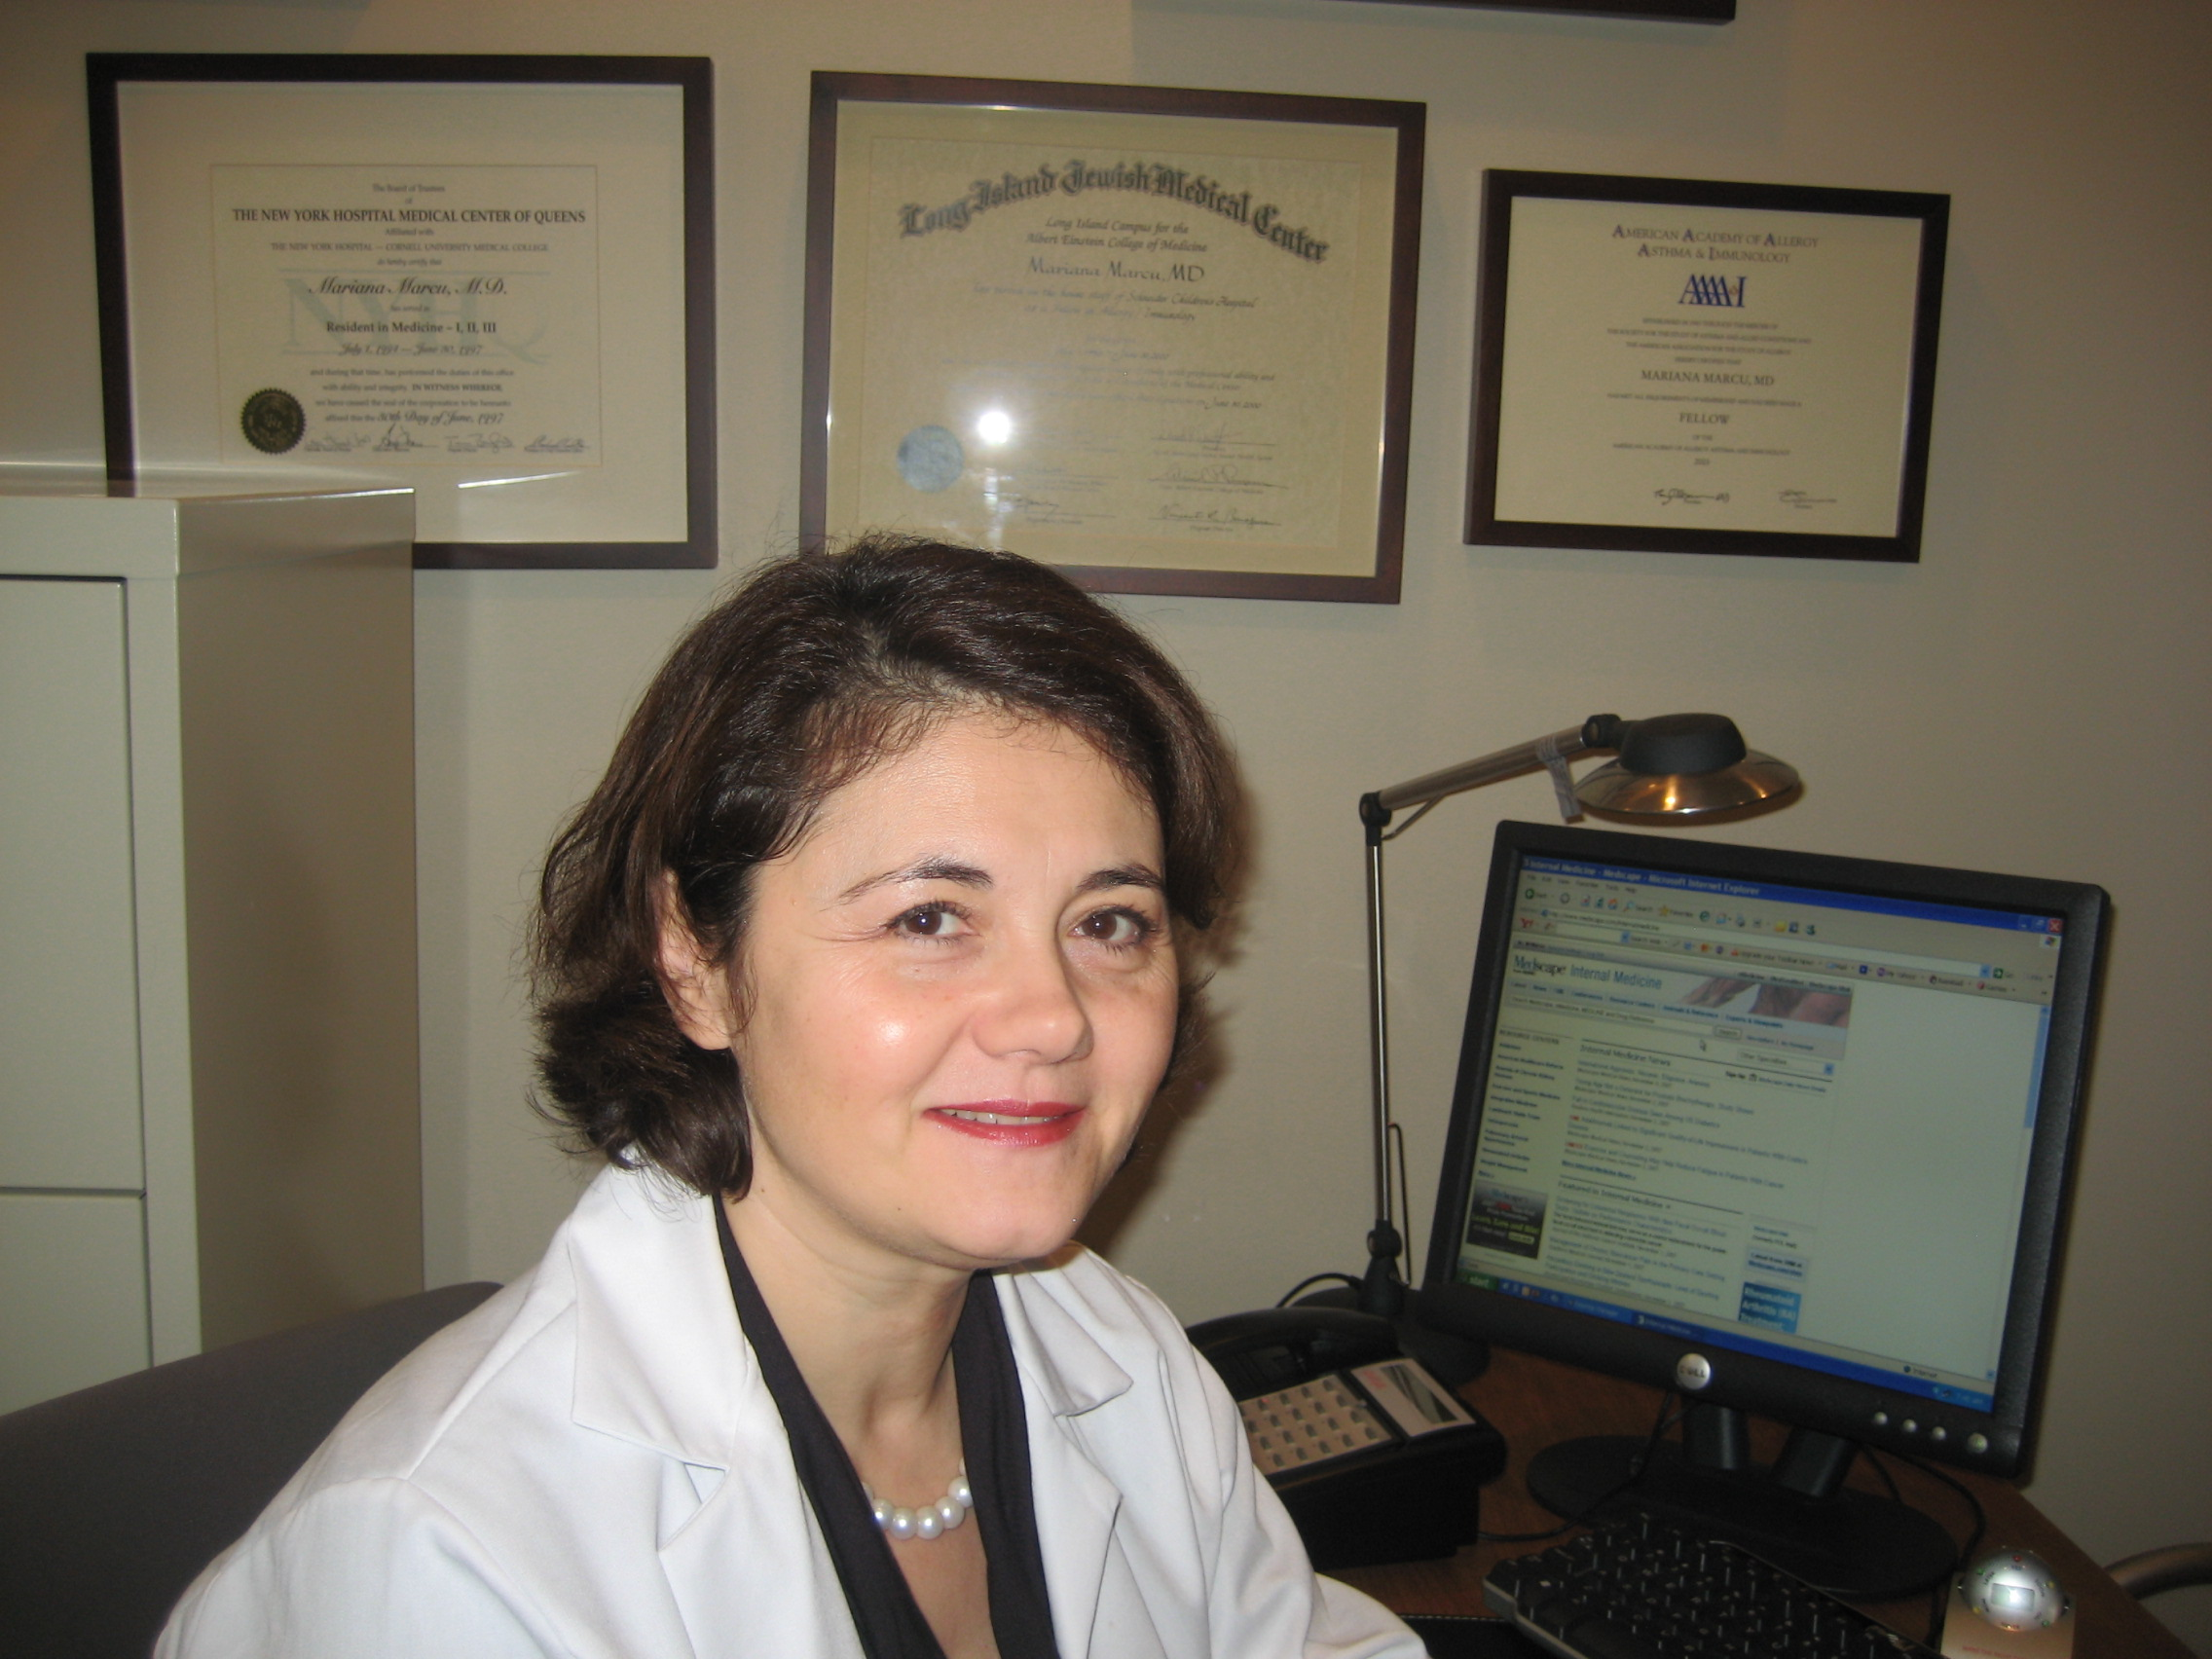 Mariana Marcu, MD